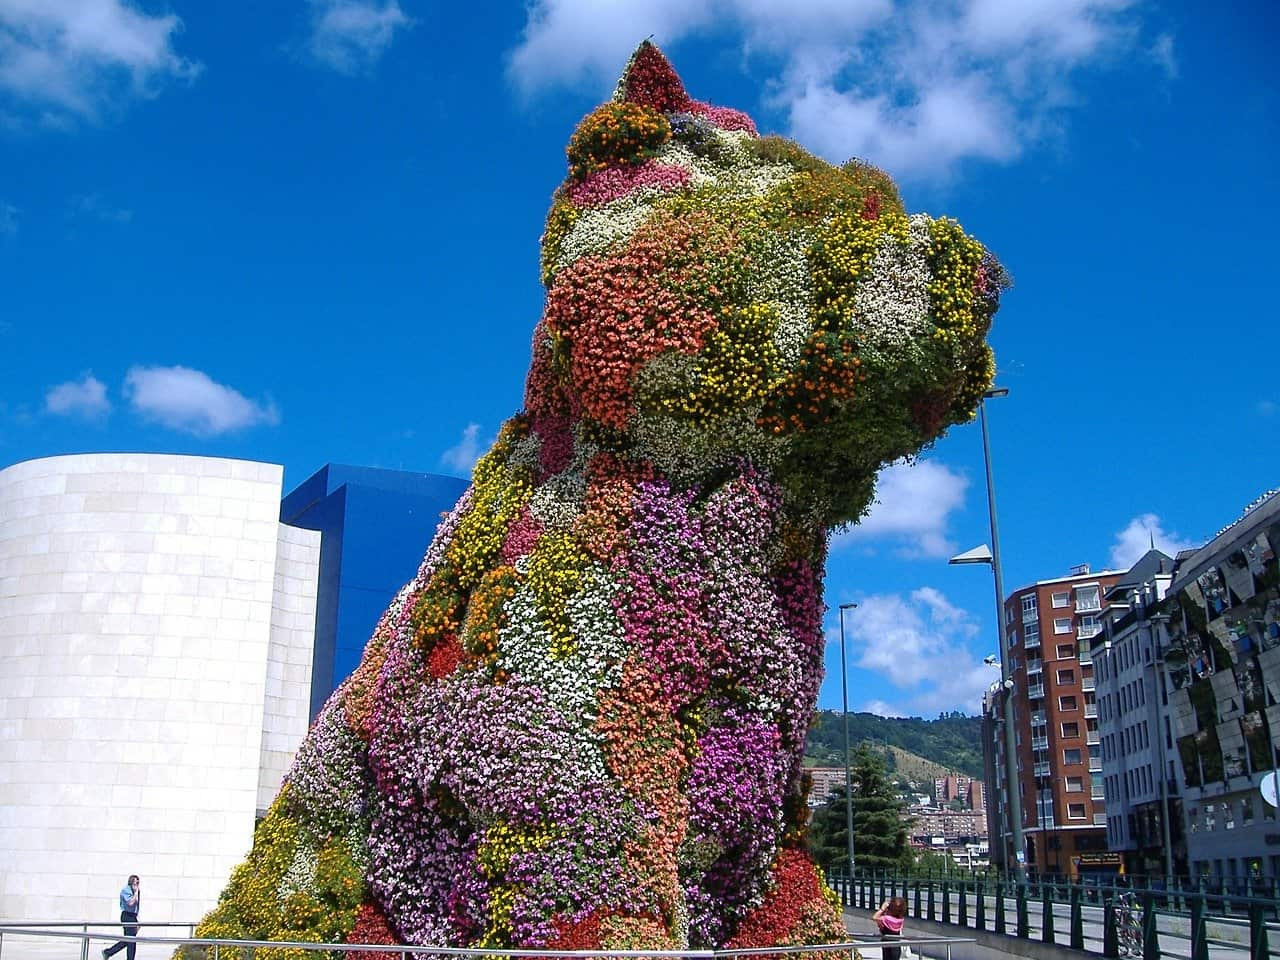 The Puppy Bilbao